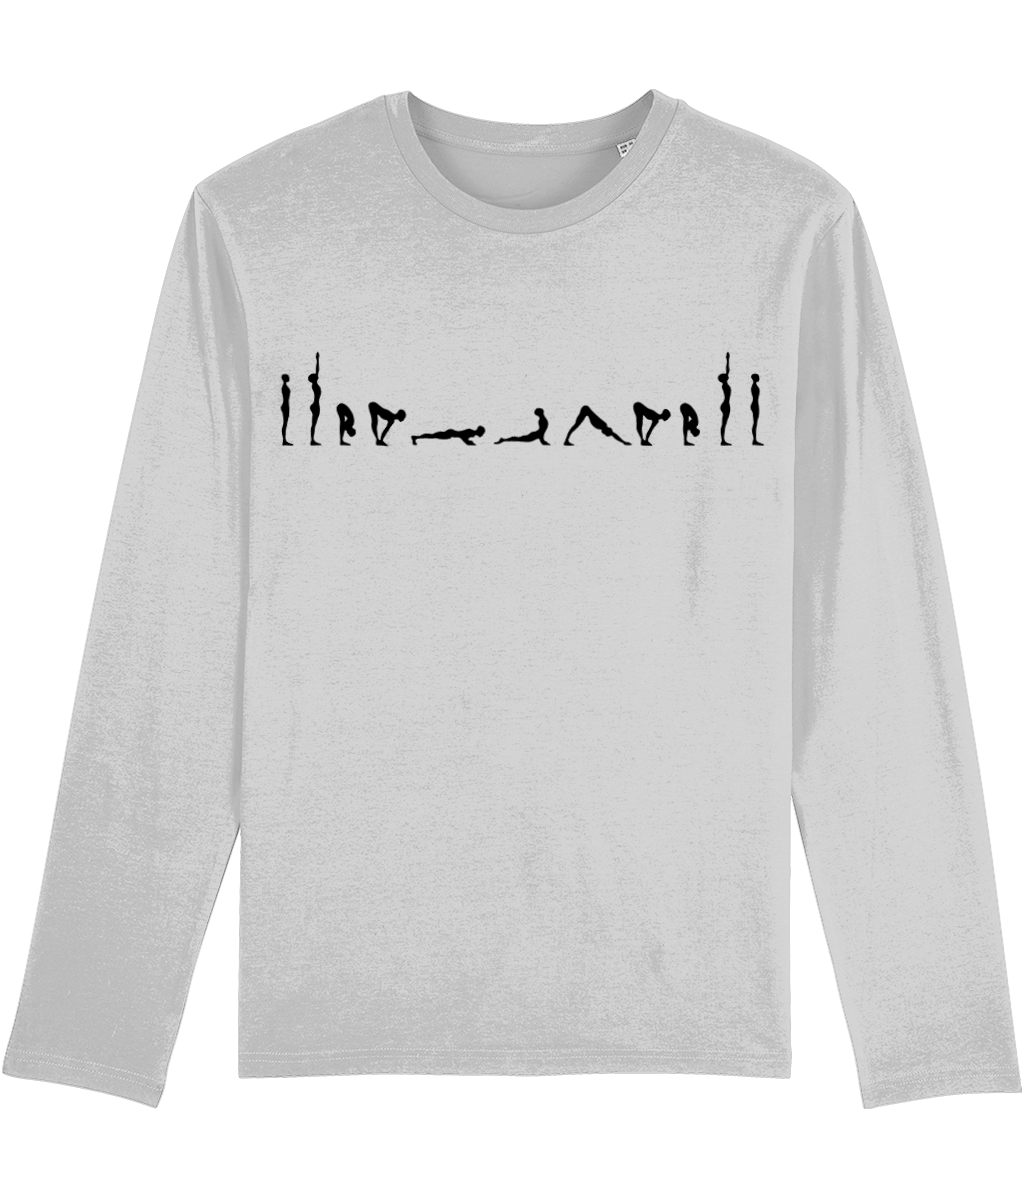 Long Sleeve T-Shirt Sun Salutations (Organic Cotton)